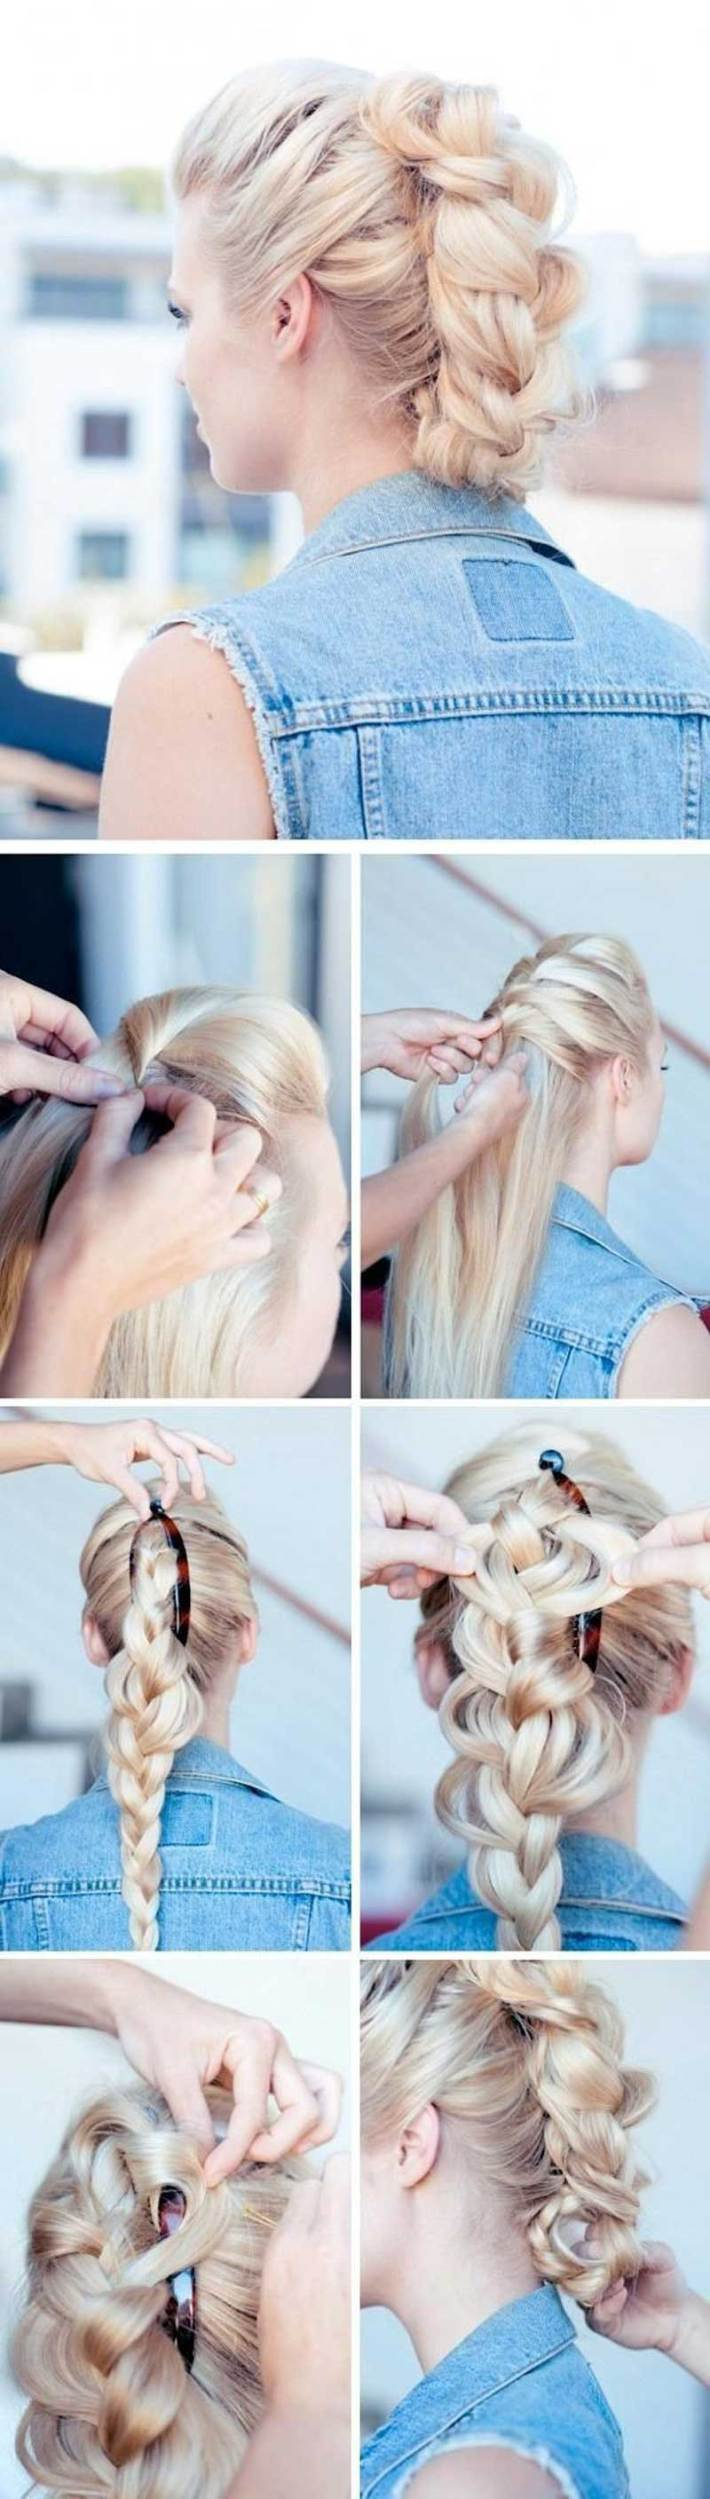 Super-Easy-Hairstyles-You-Can-Do-In-Less-Than-10-Minutes-post